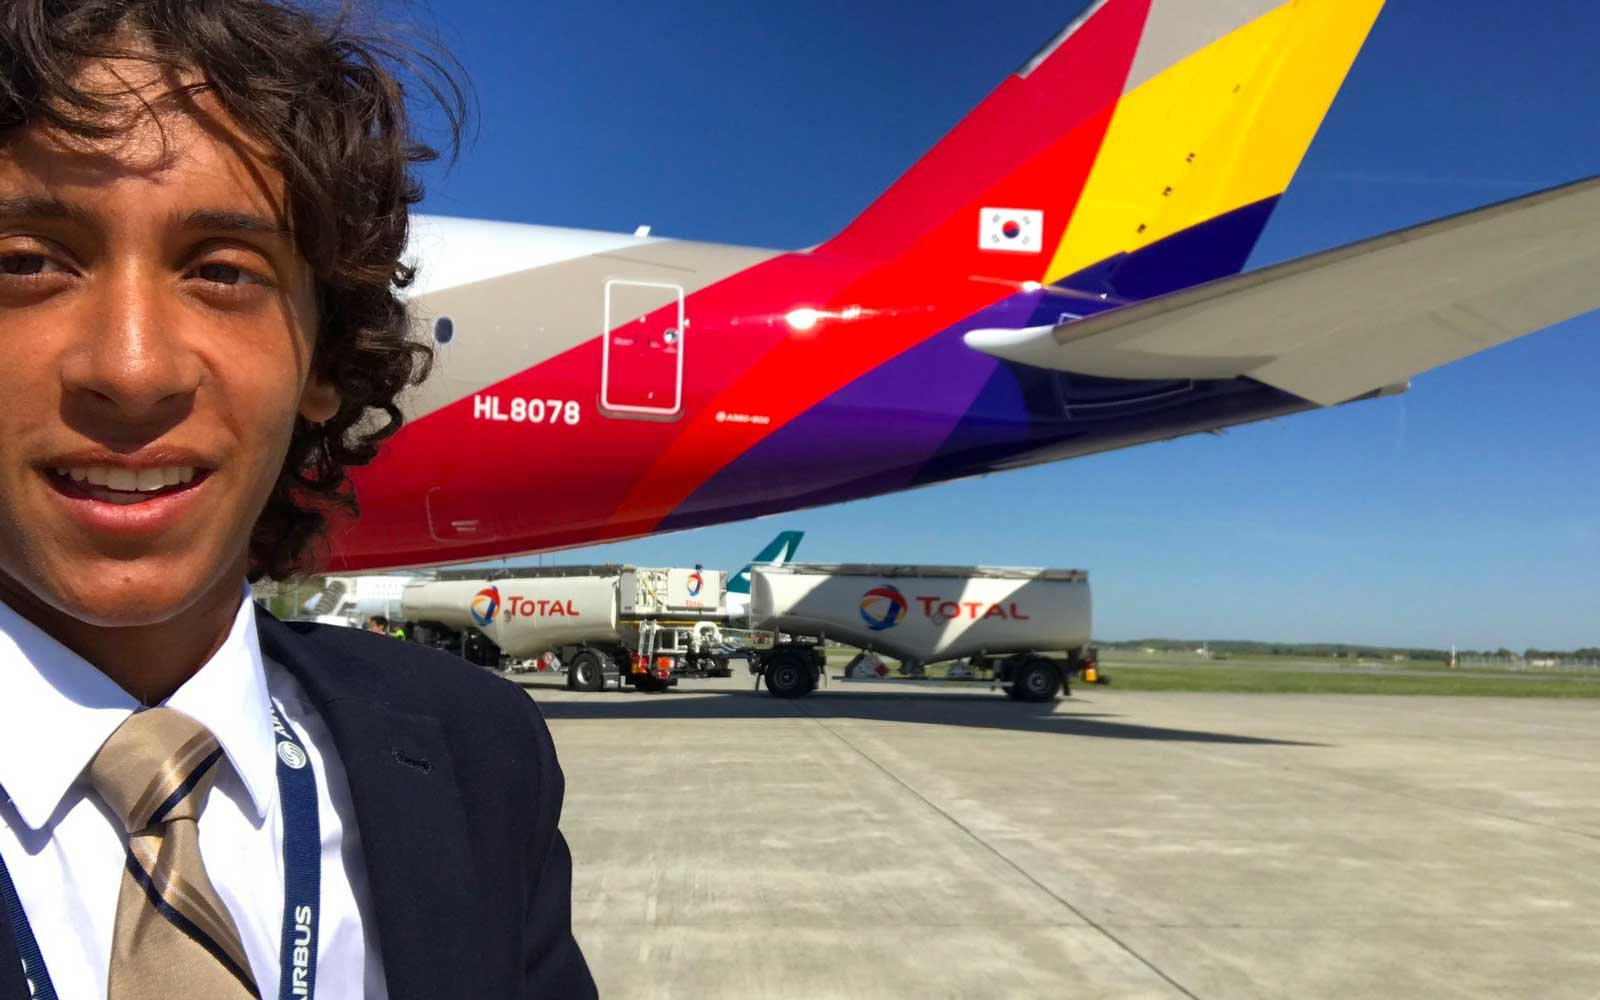 This 20-year-old Aviation Expert Has the Coolest Job on the Planet